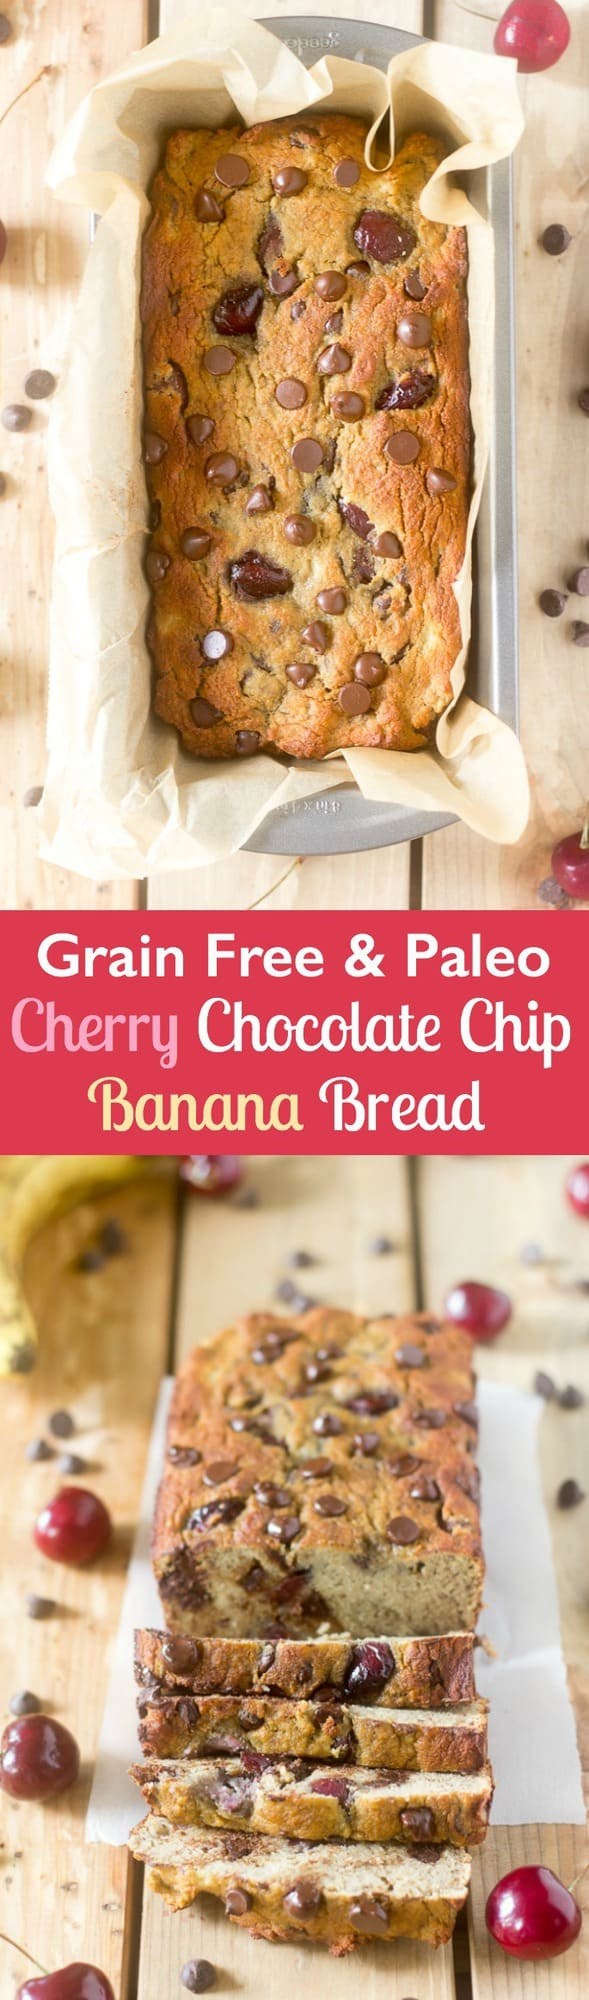 Grain free and Paleo Cherry Chocolate Chip Banana bread that's also nut free and perfect for breakfast or a snack. Very kid friendly!